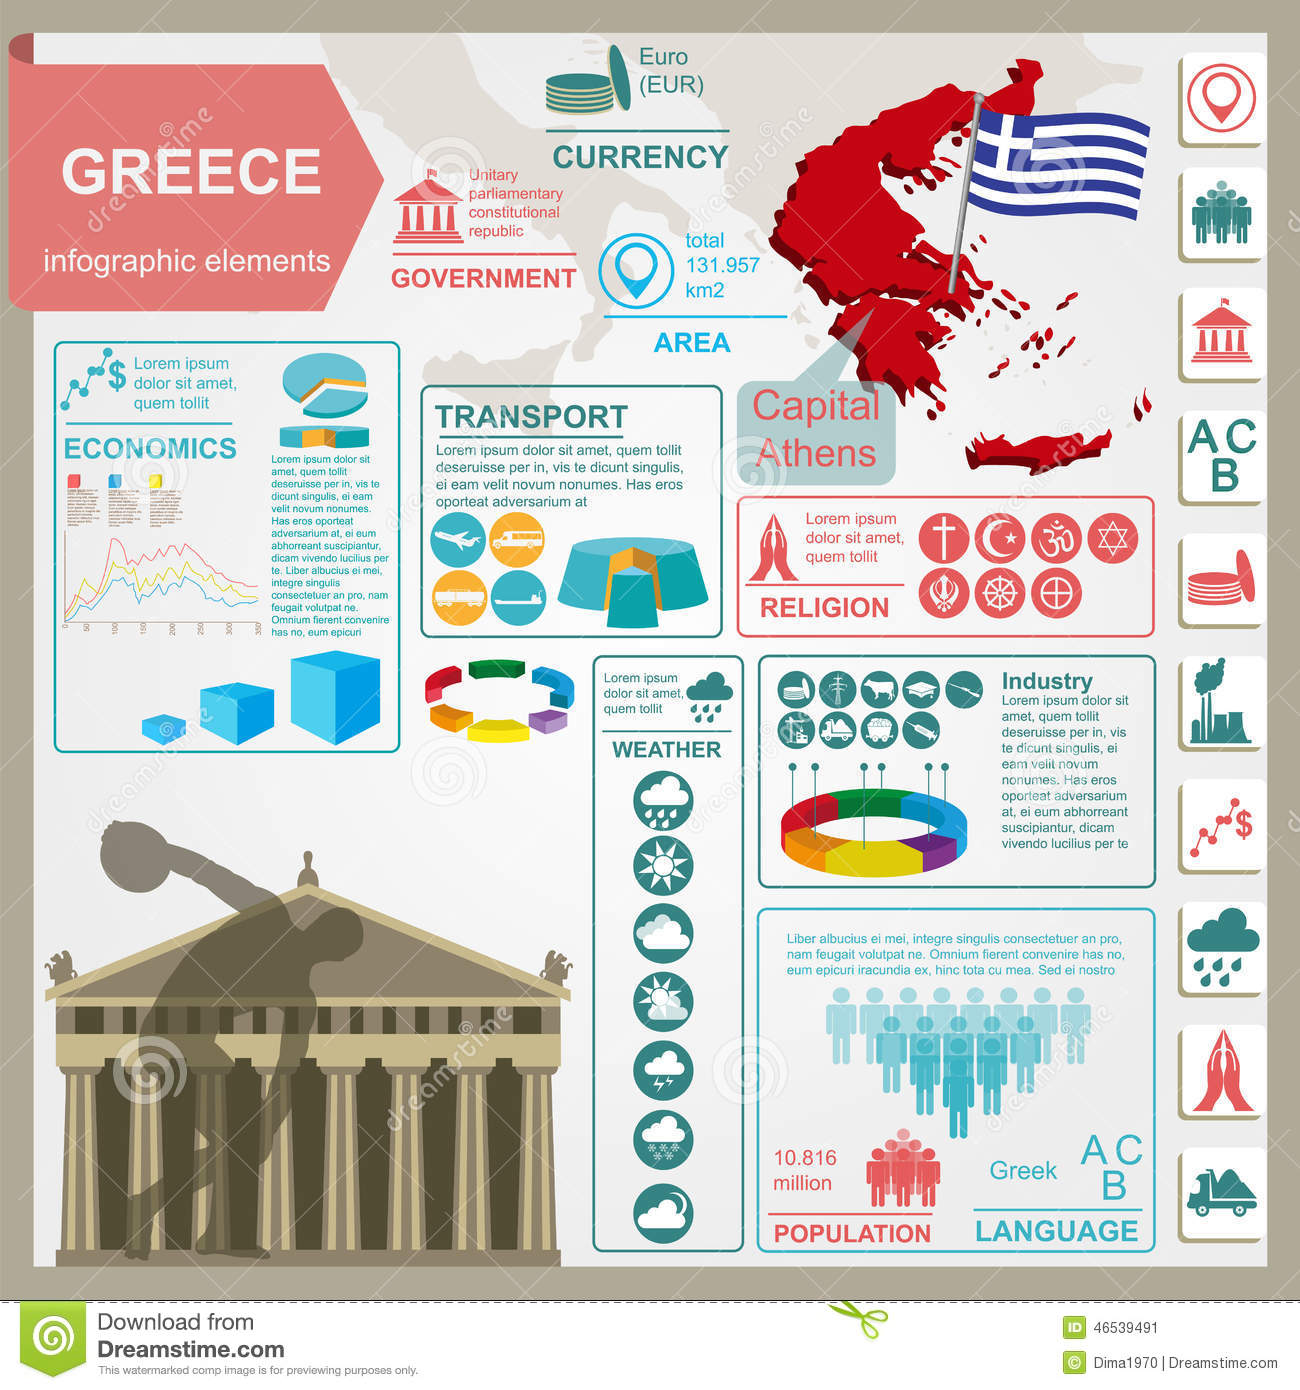 Unique European House Plans Greece Infographics Statistical Data Sights Stock Vector